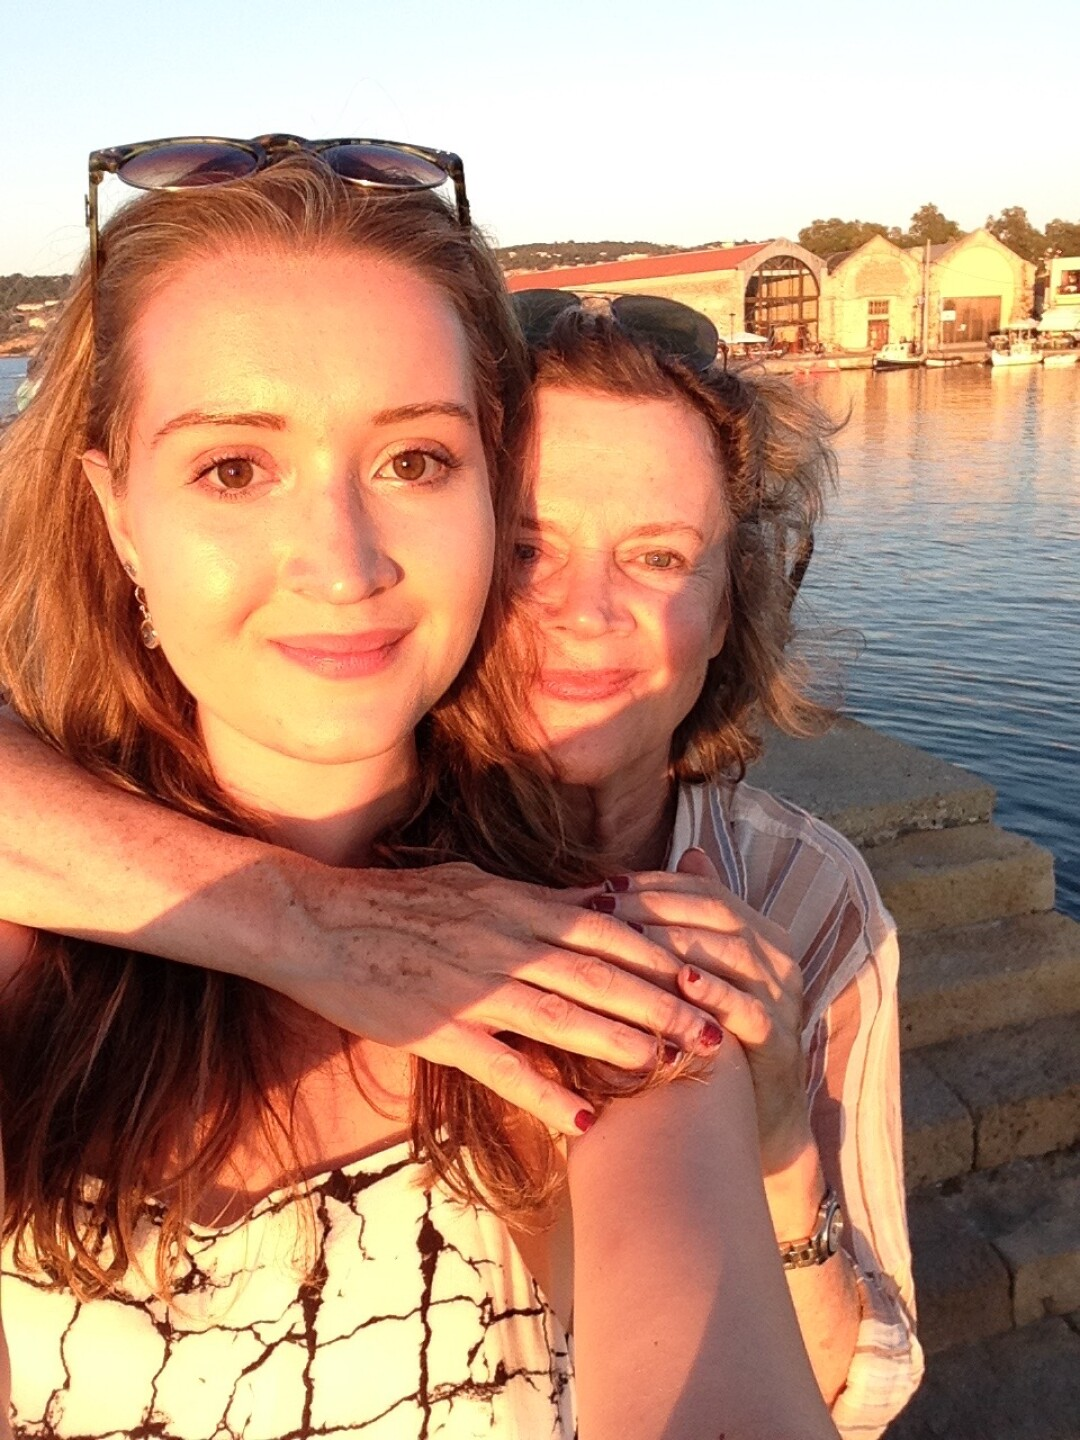 Lucy Kane and her mother, Holly Anderson take a selfie photo.